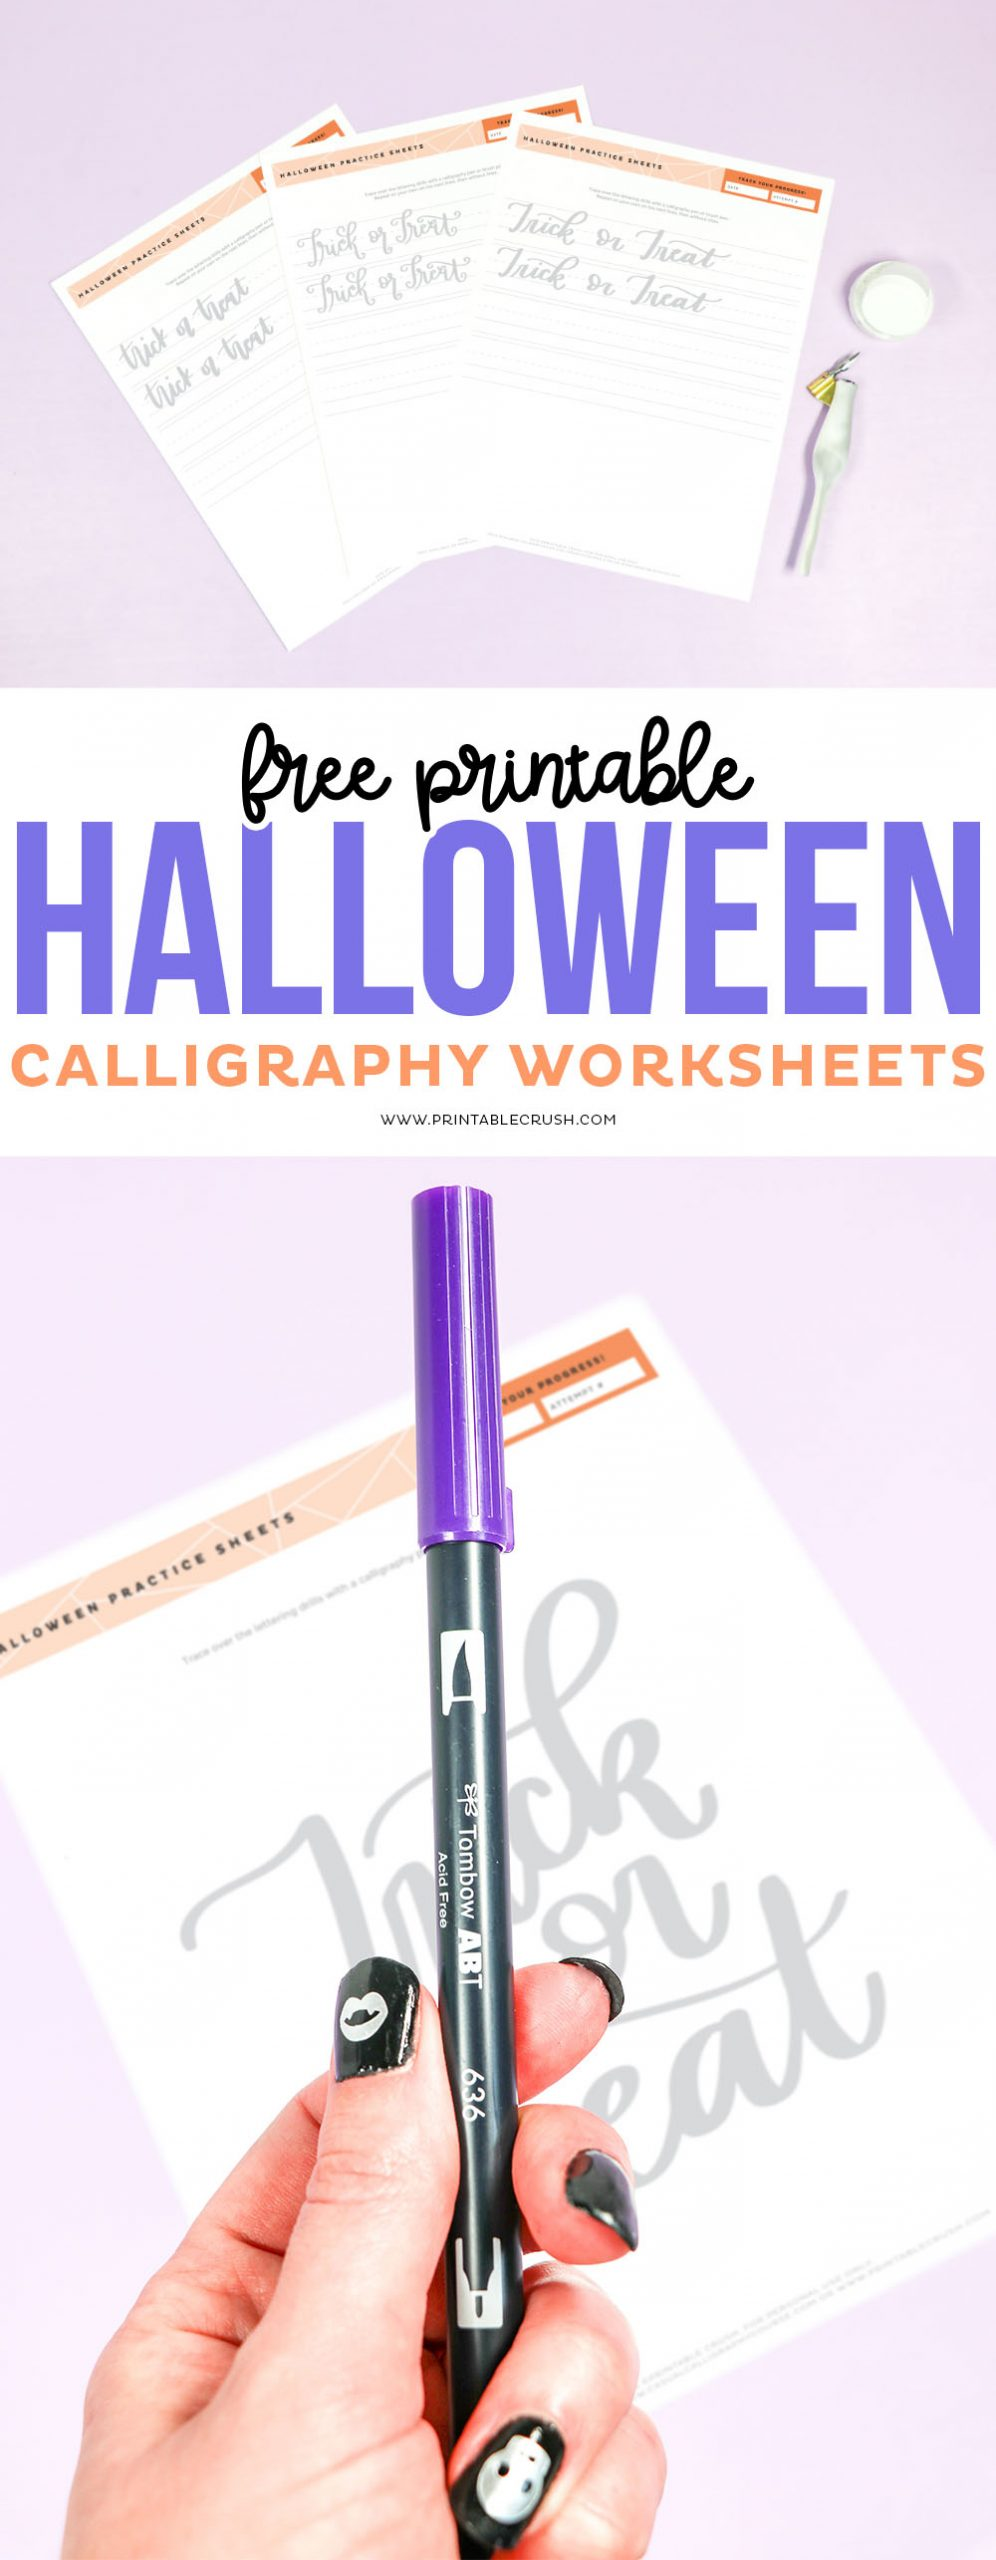 Free Halloween Calligraphy Practice Sheets - Printable Crush #calligraphy #handlettering #halloween via @printablecrush